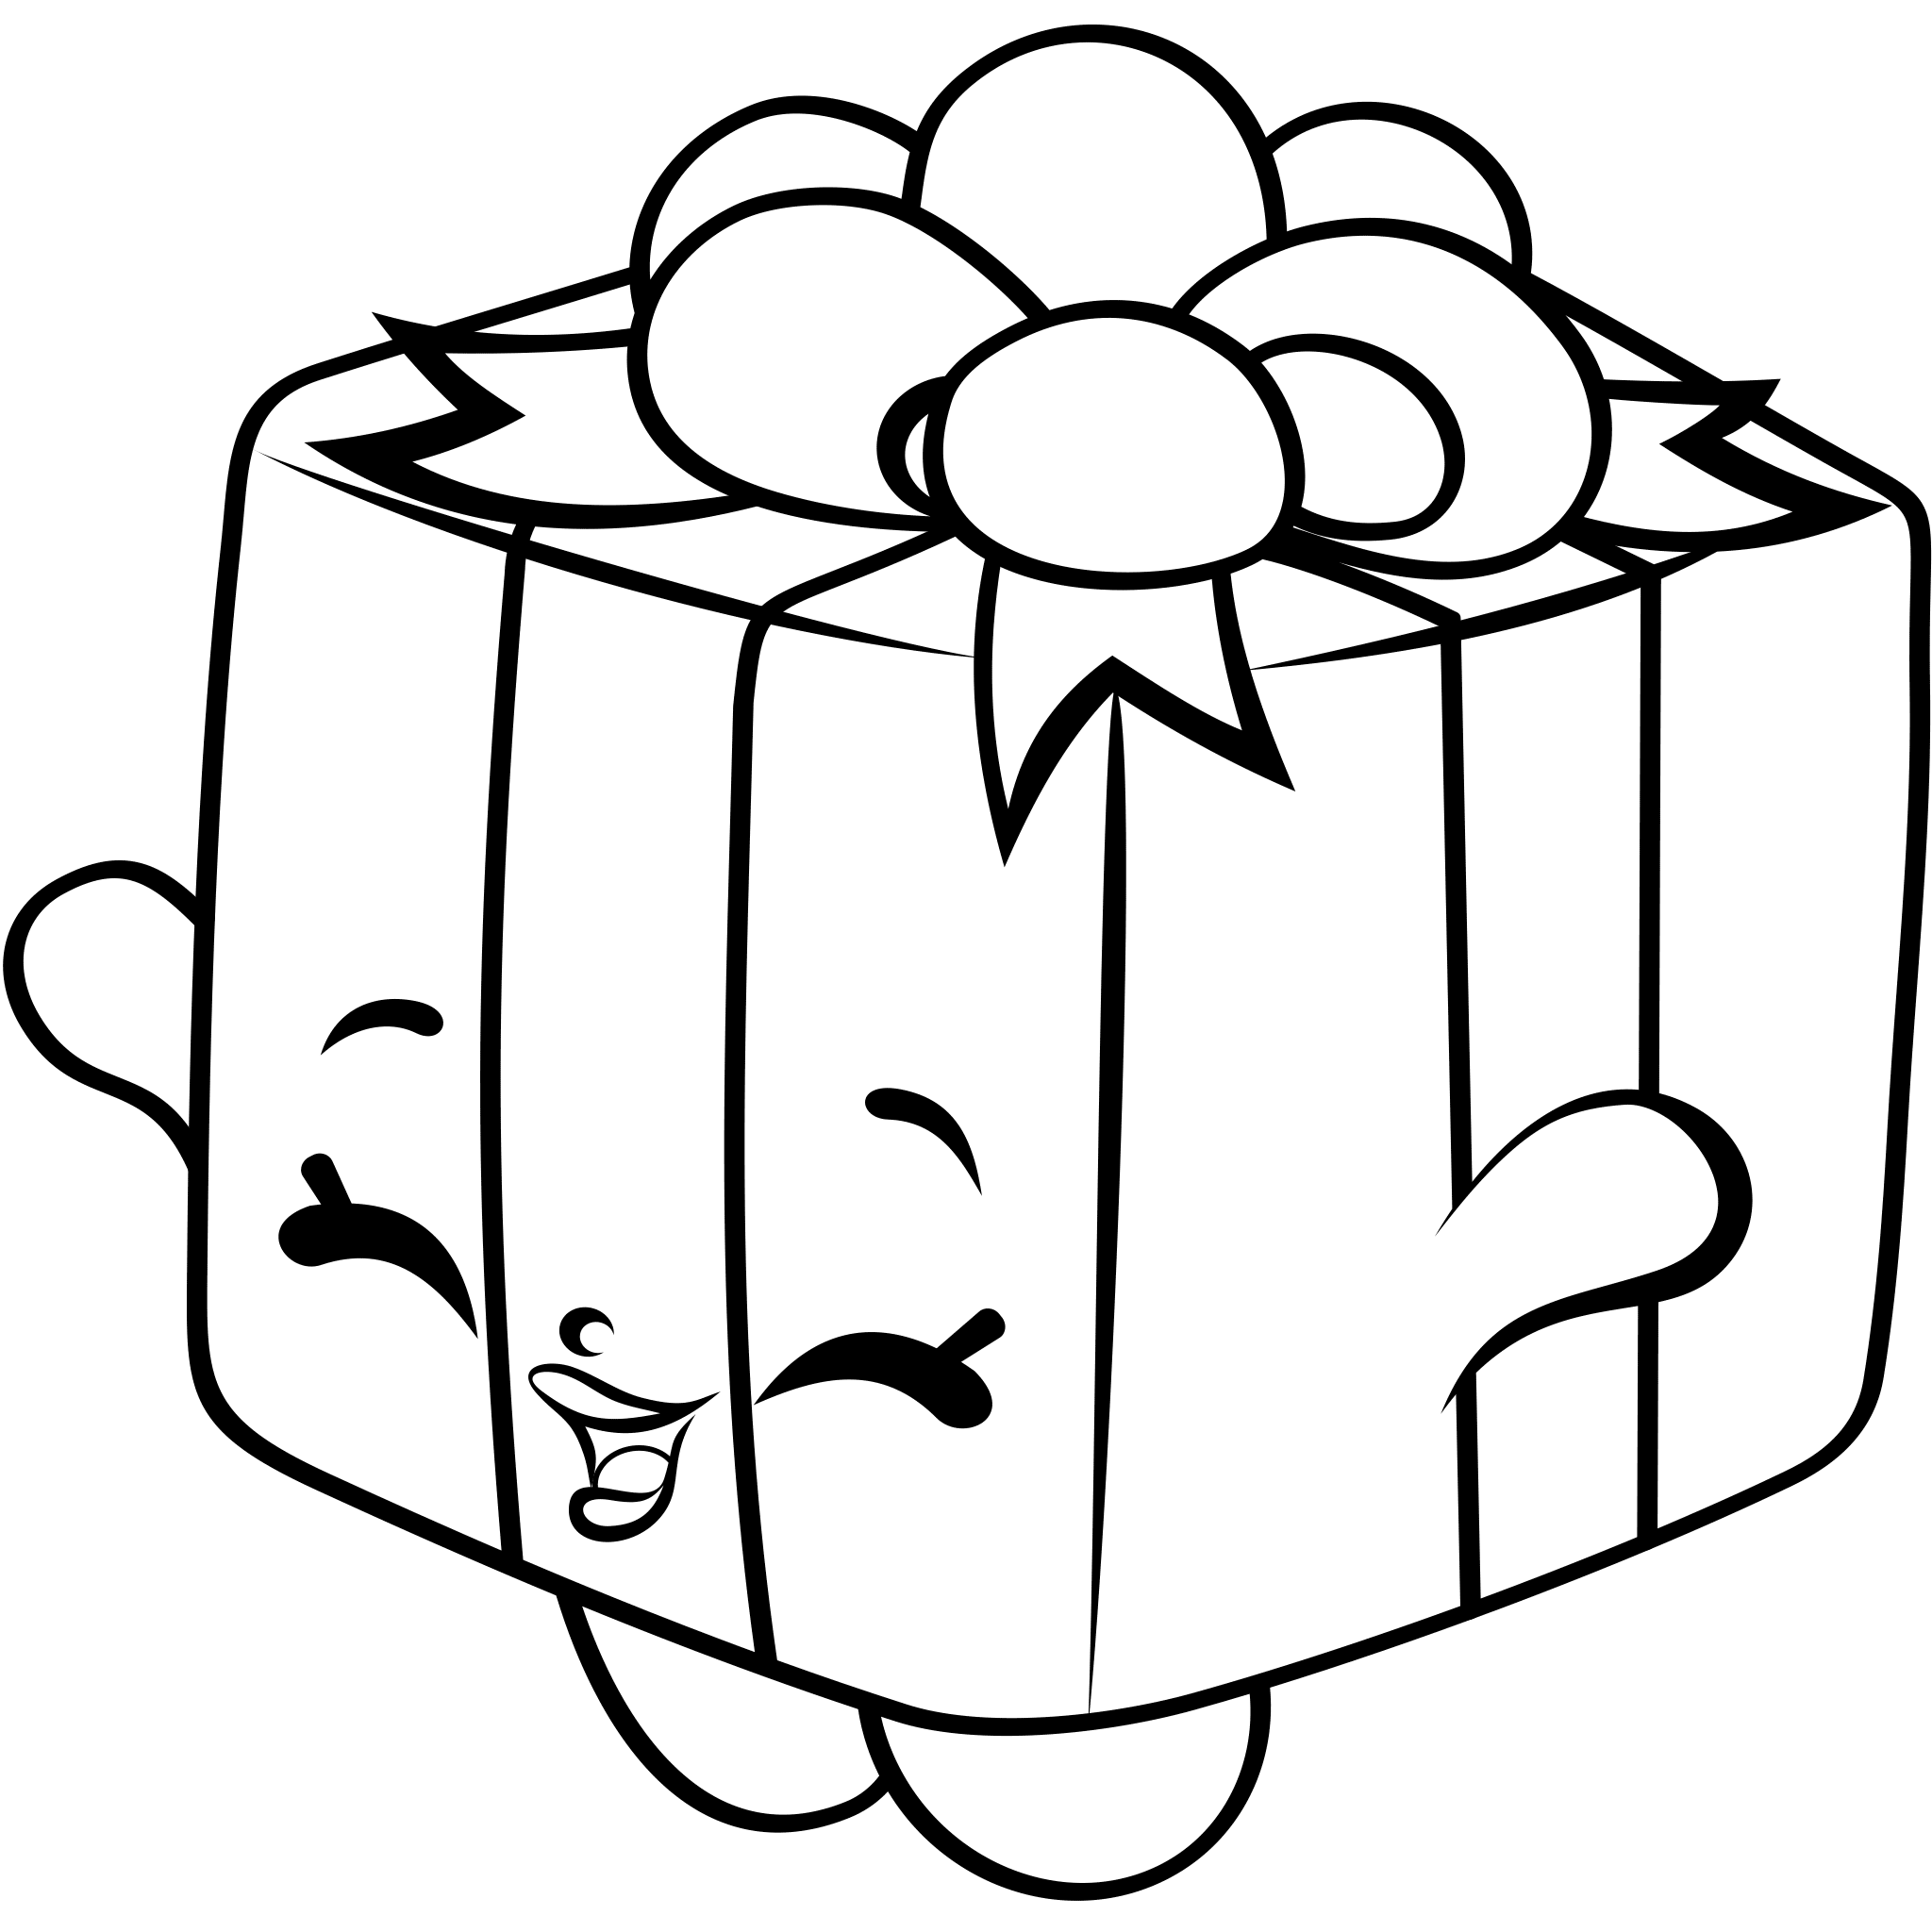 Shopkins Coloring Pages Best Coloring Pages For Kids Coloring Pages For Your And